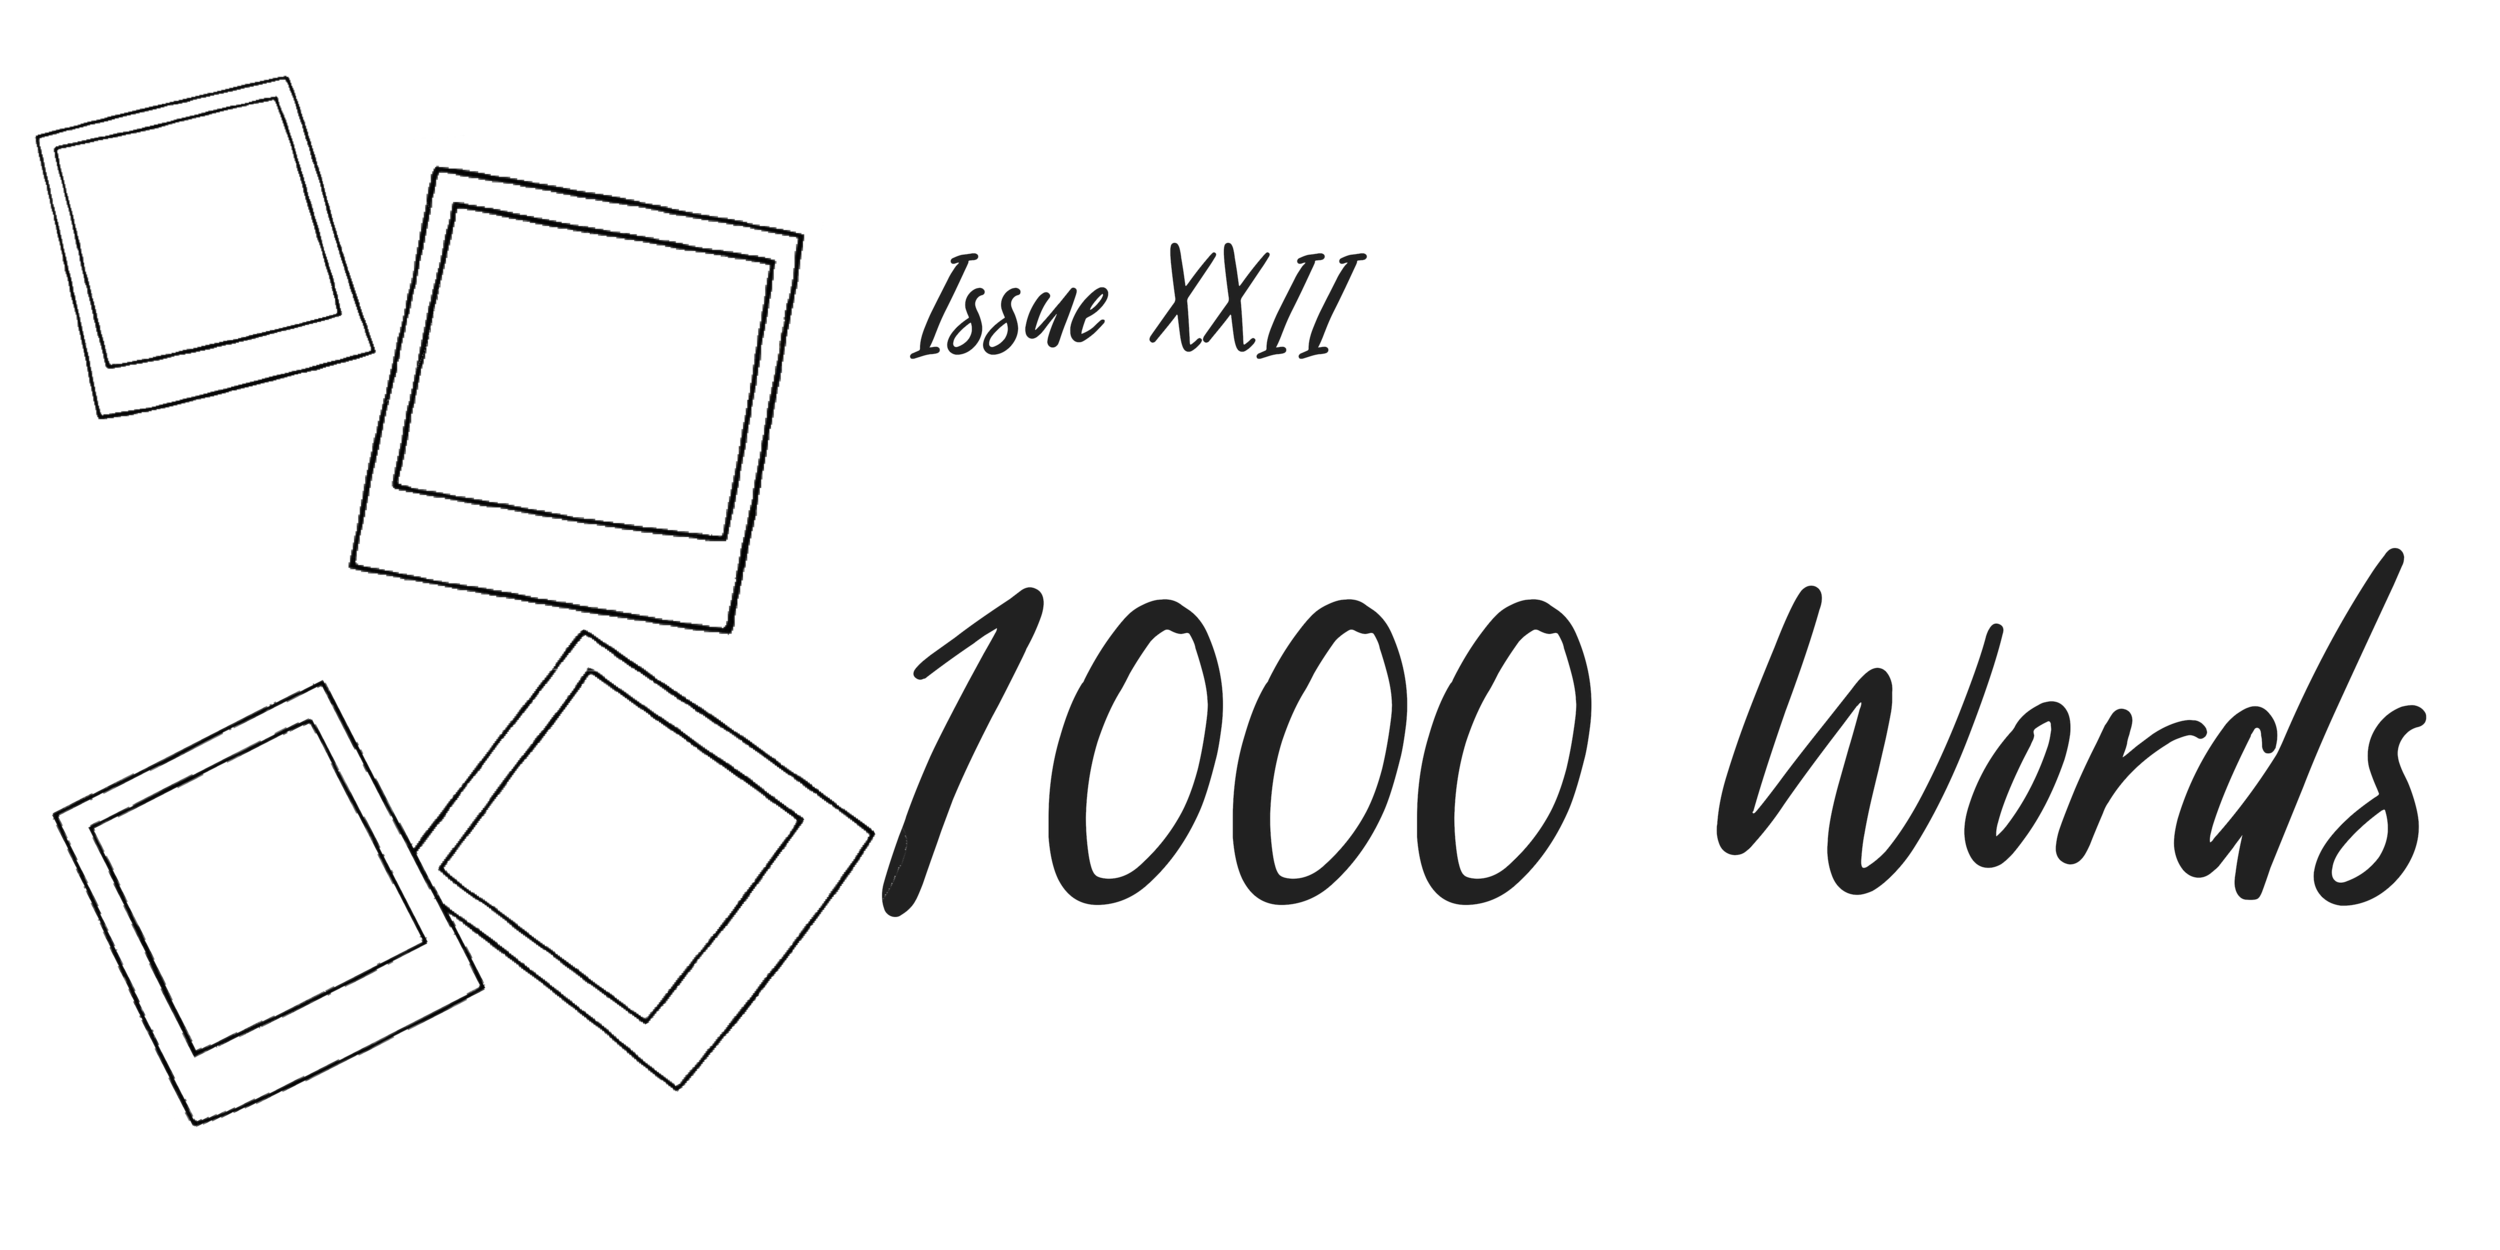 Issue XXII_ 1000 Words.png